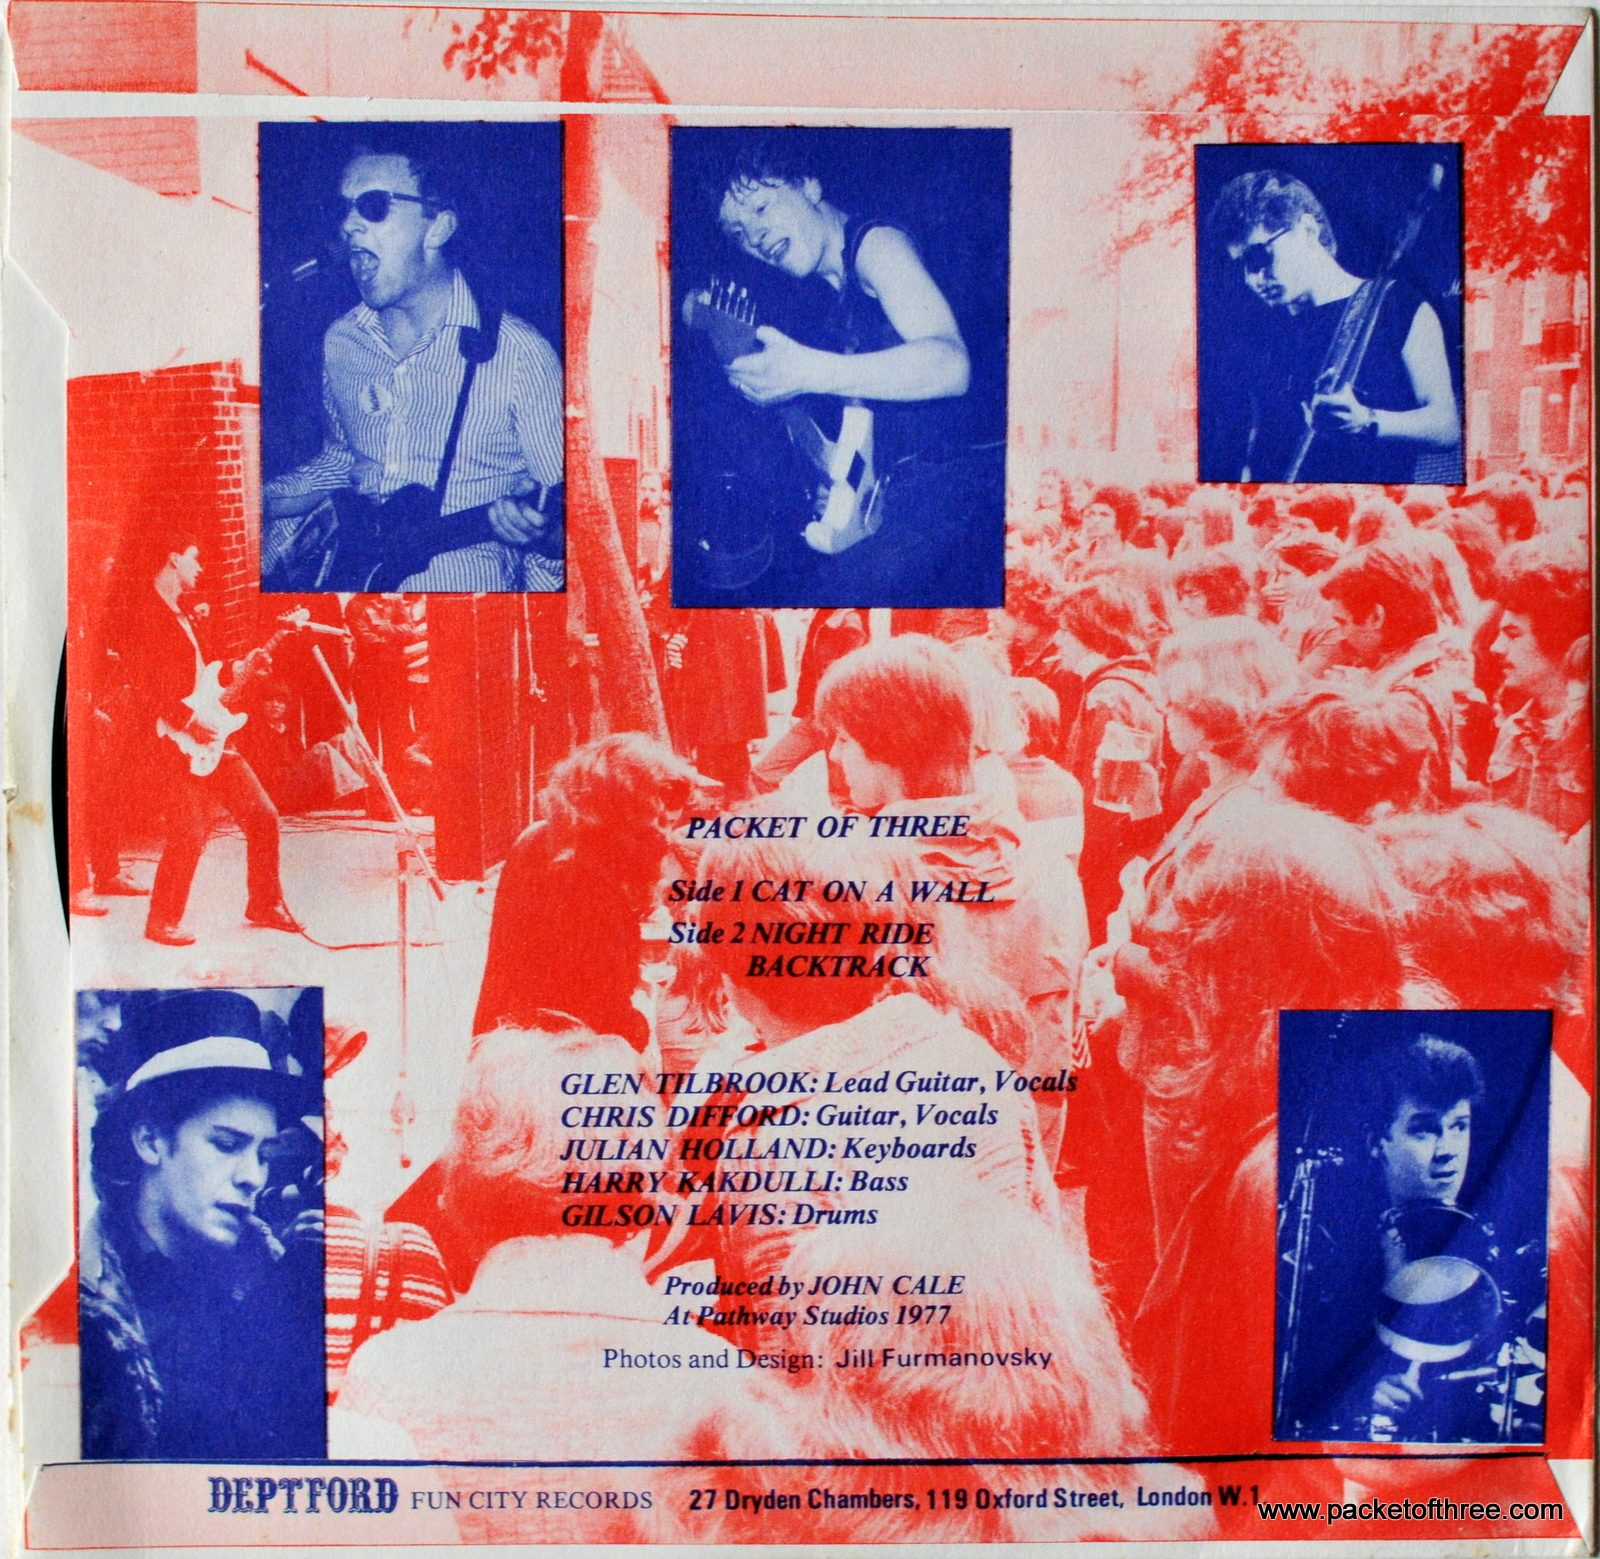 """DFC 001 Packet of Three - UK - 7"""" picture sleeve"""